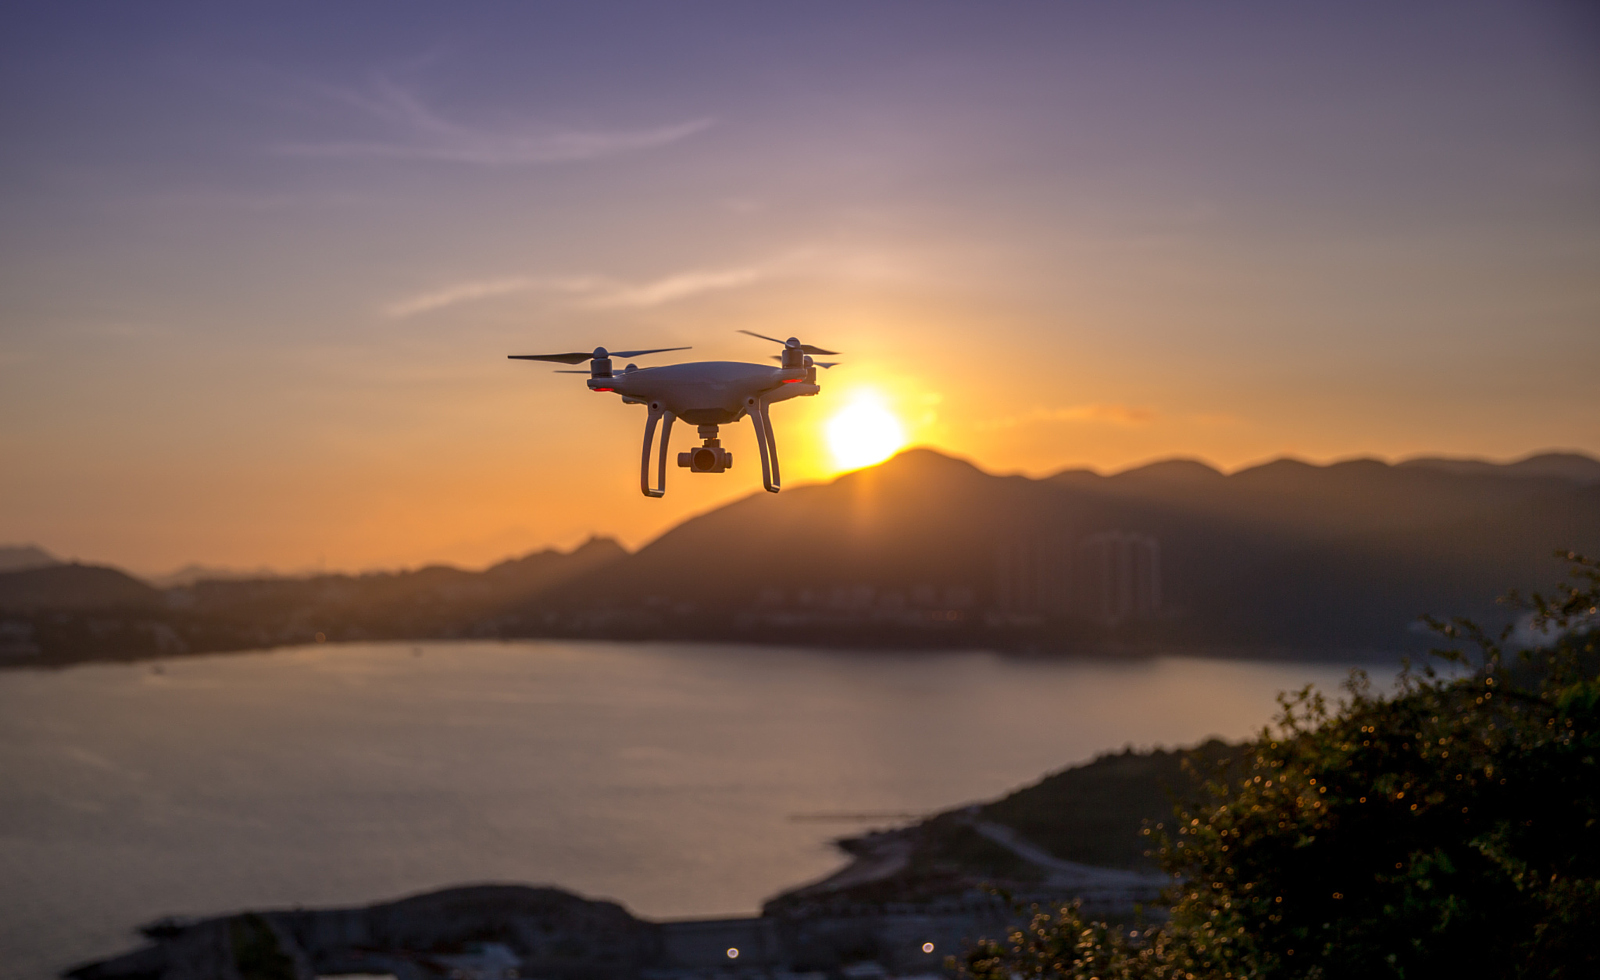 Aerial  - Capture a different perspective with our professional drone!  Whether you want photos or video; see your facility or event from a whole new angle.